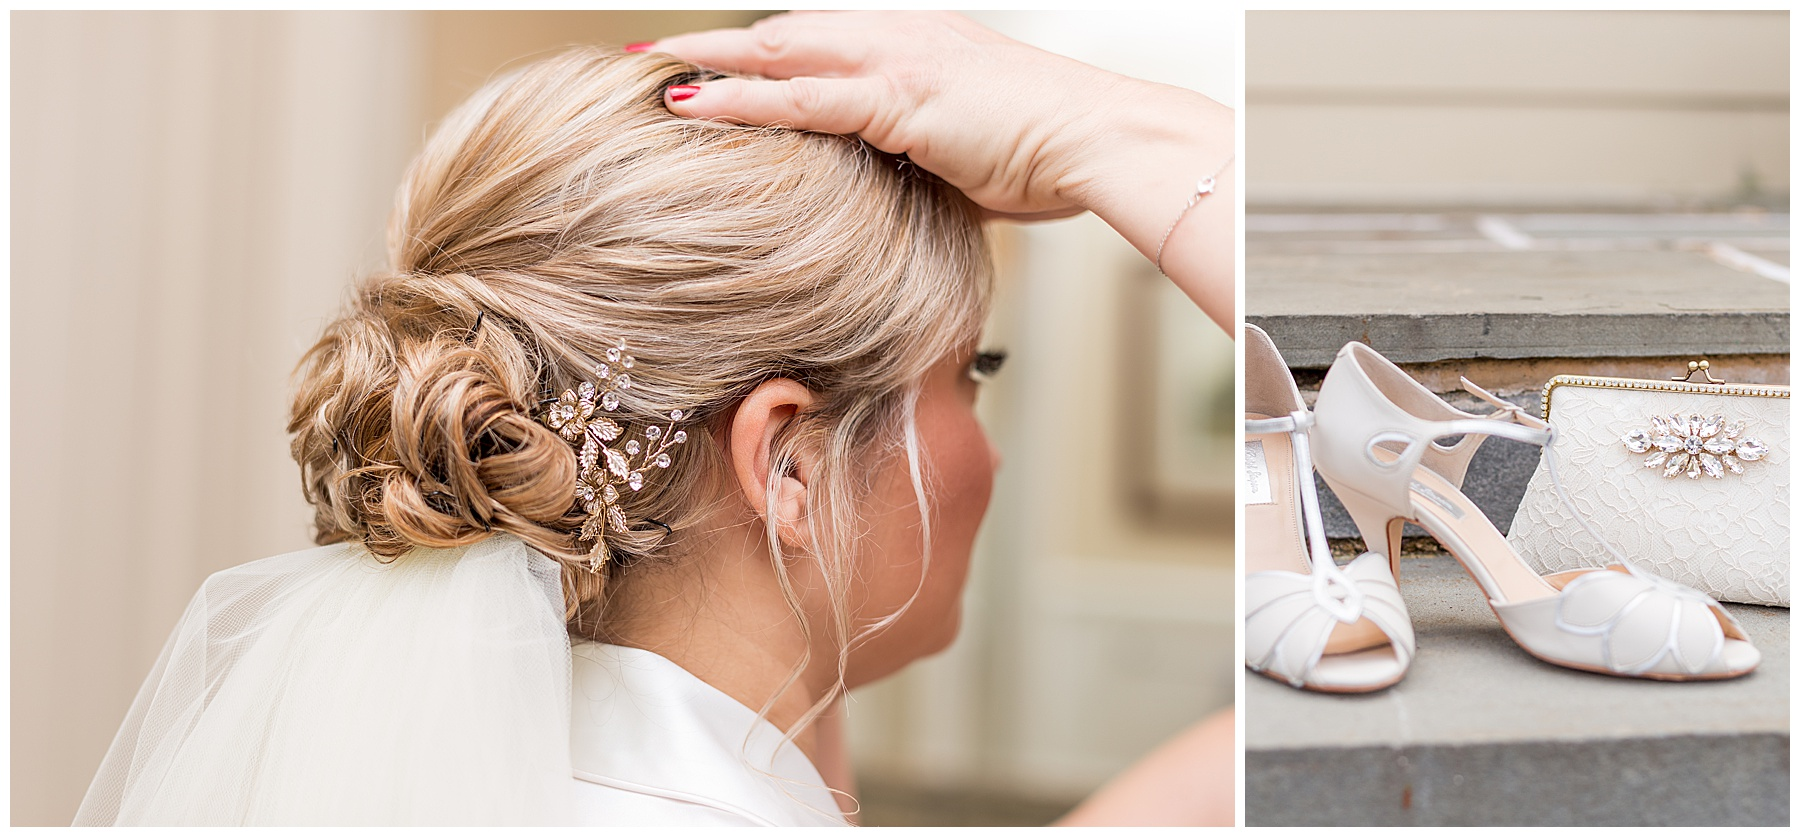 The Chocolate Spa  did an amazing job on Kerri's hair, and that hairpiece matched the rest of her accessories so well!